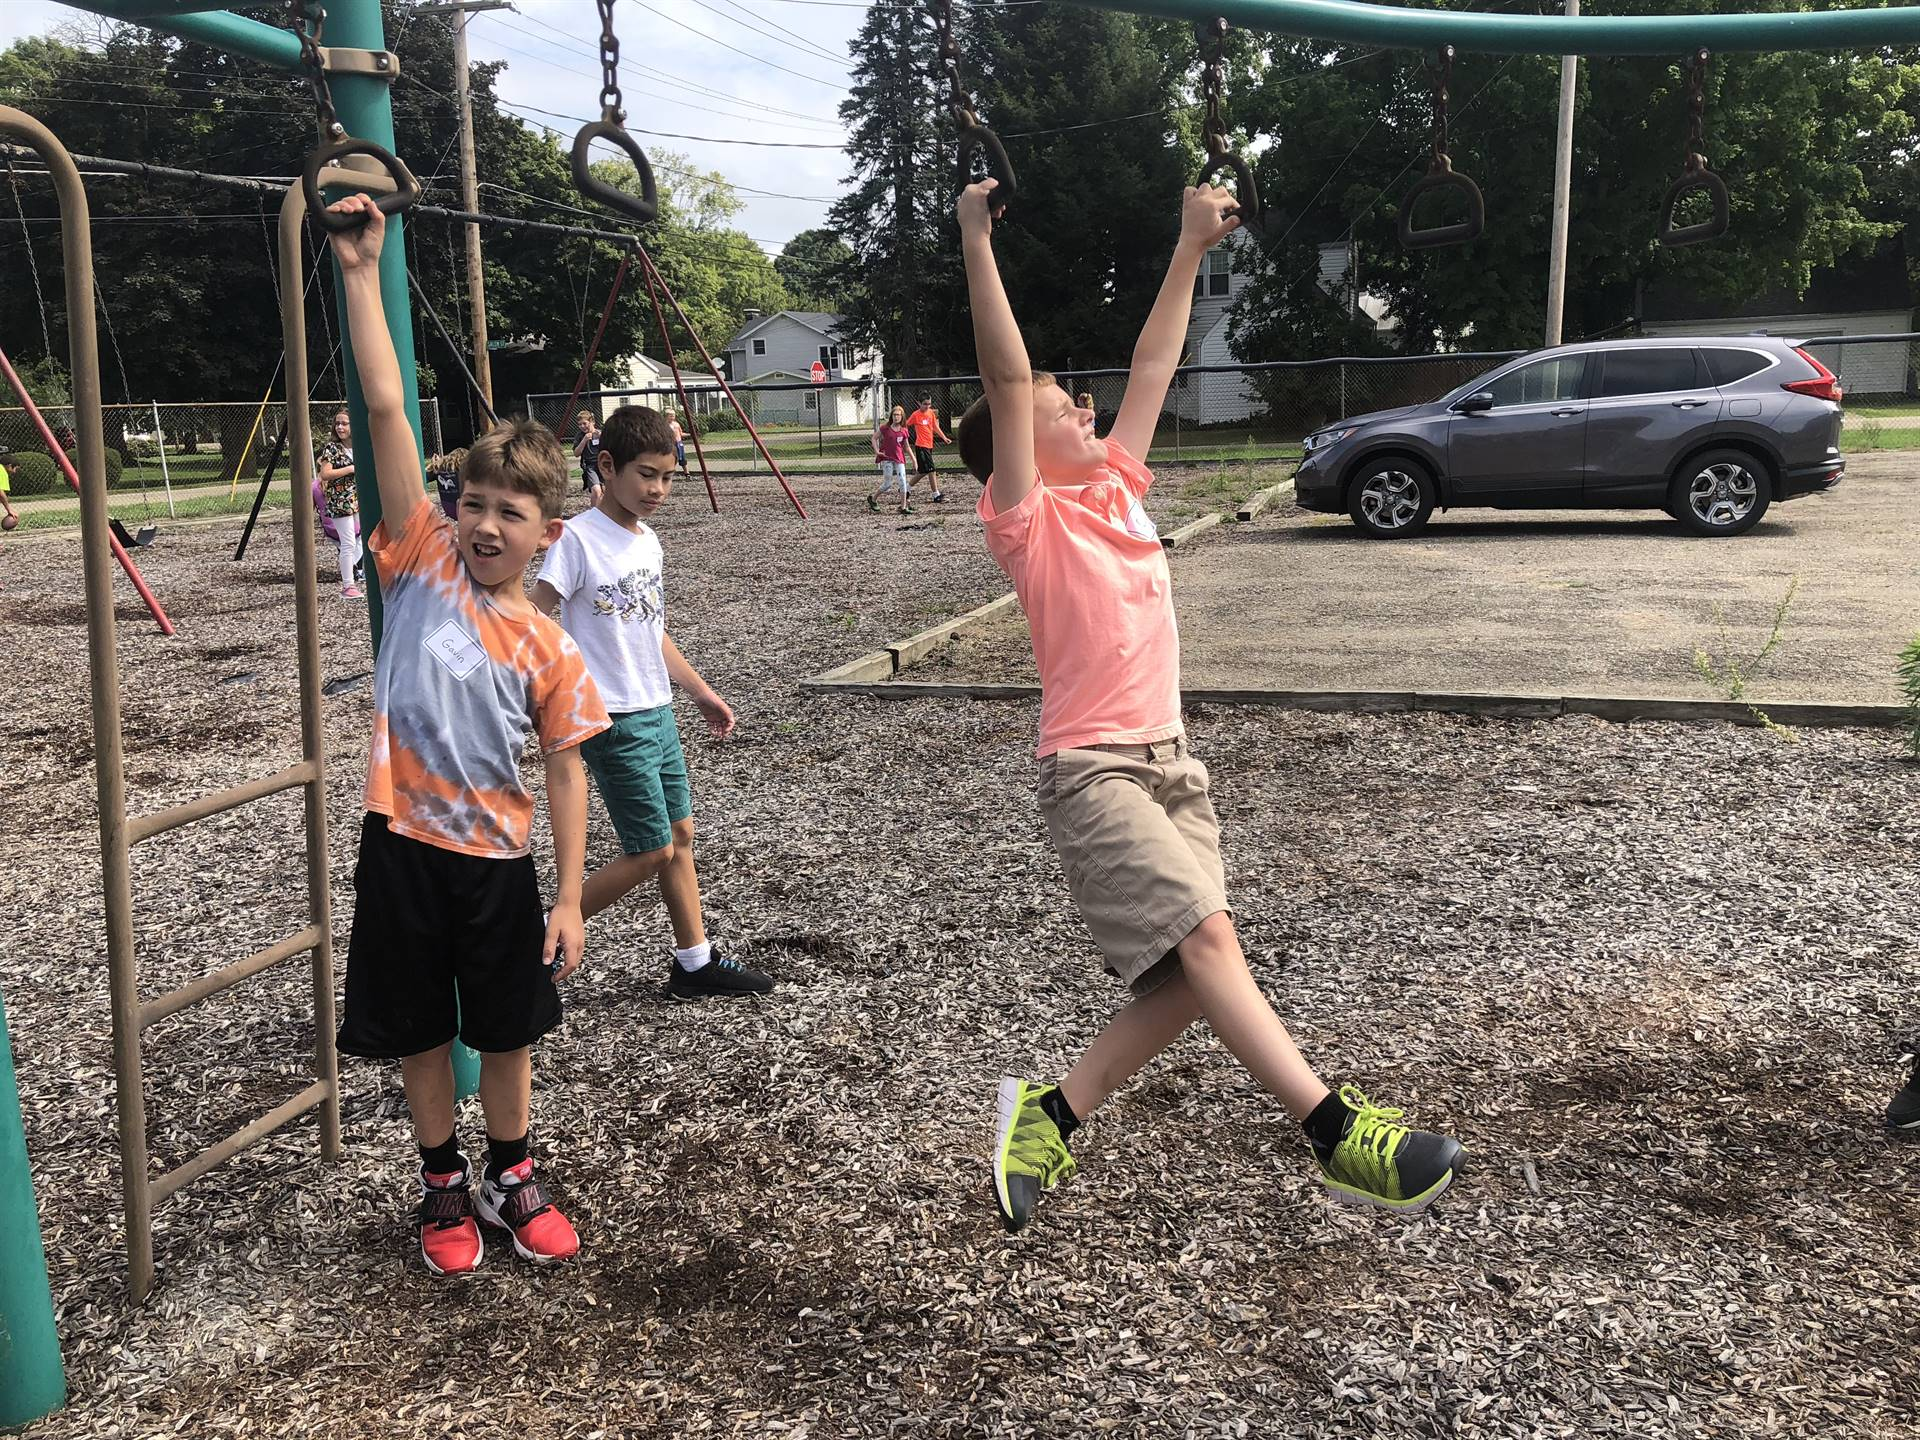 Students enjoying recess.